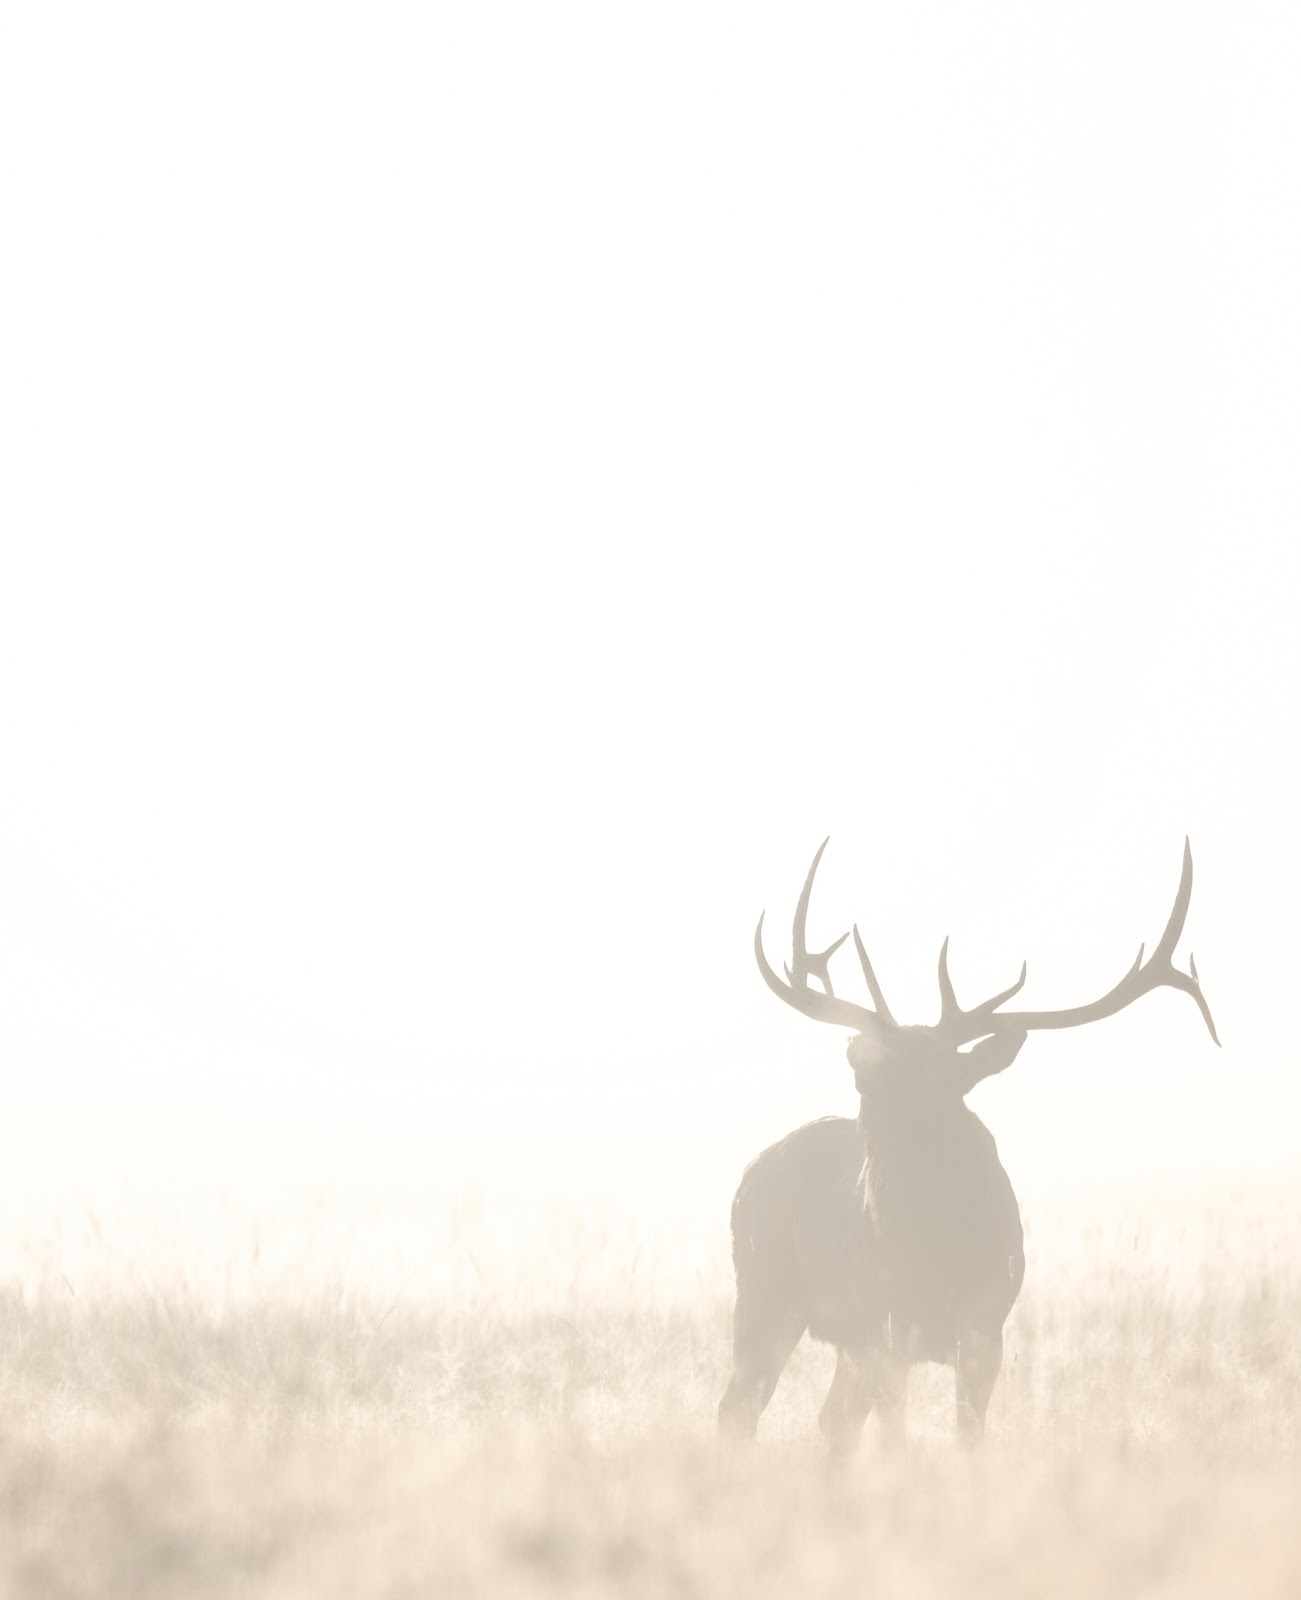 A bull elk in all its glory.